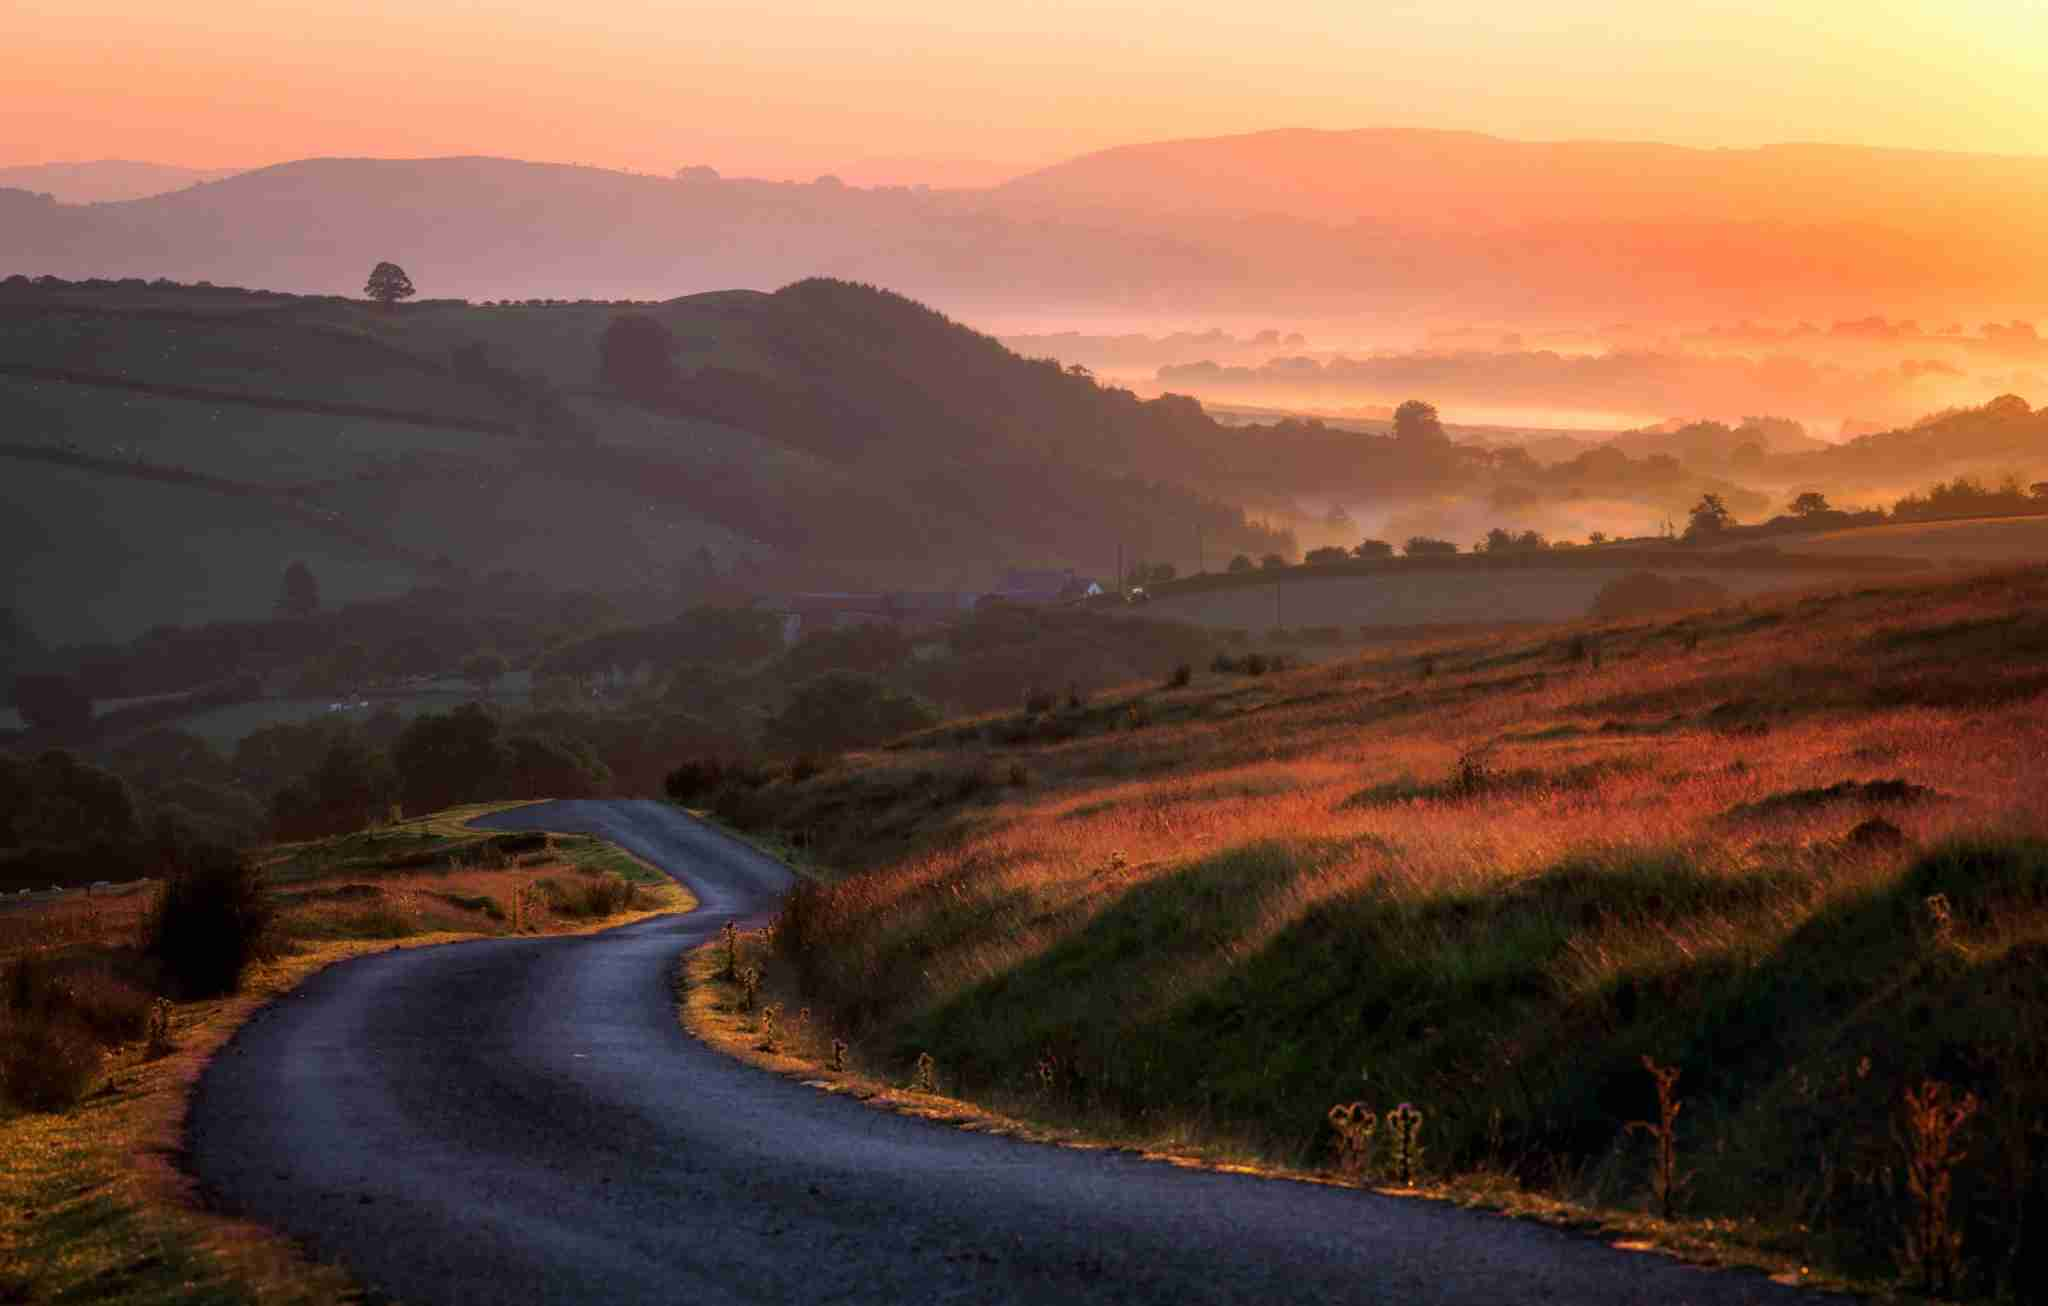 Mist over the valleys in the Brecon Beacons. (Photo by joe daniel price/Getty Images)